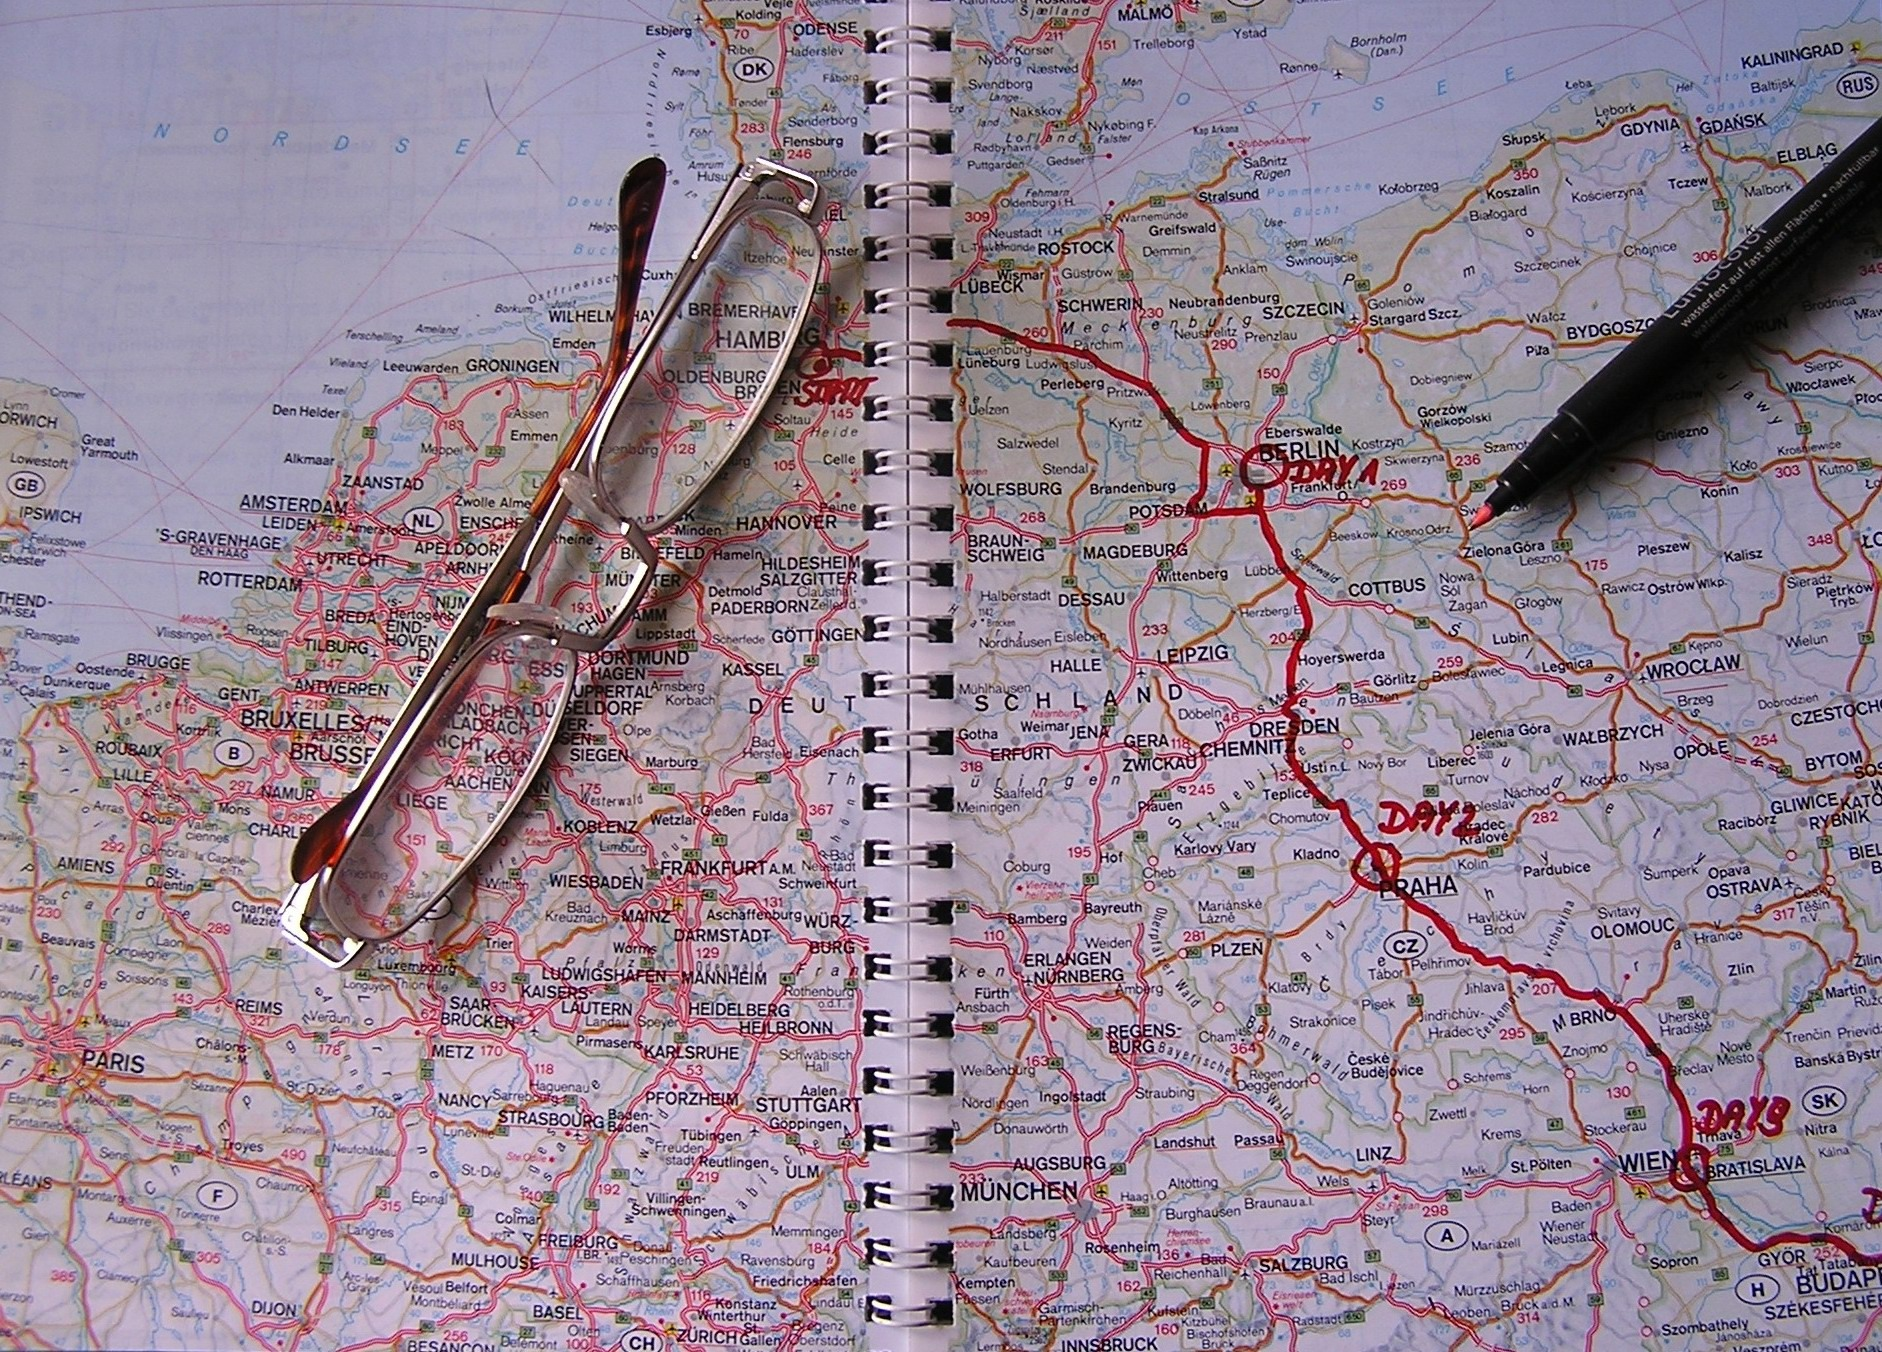 A route drawn on a map